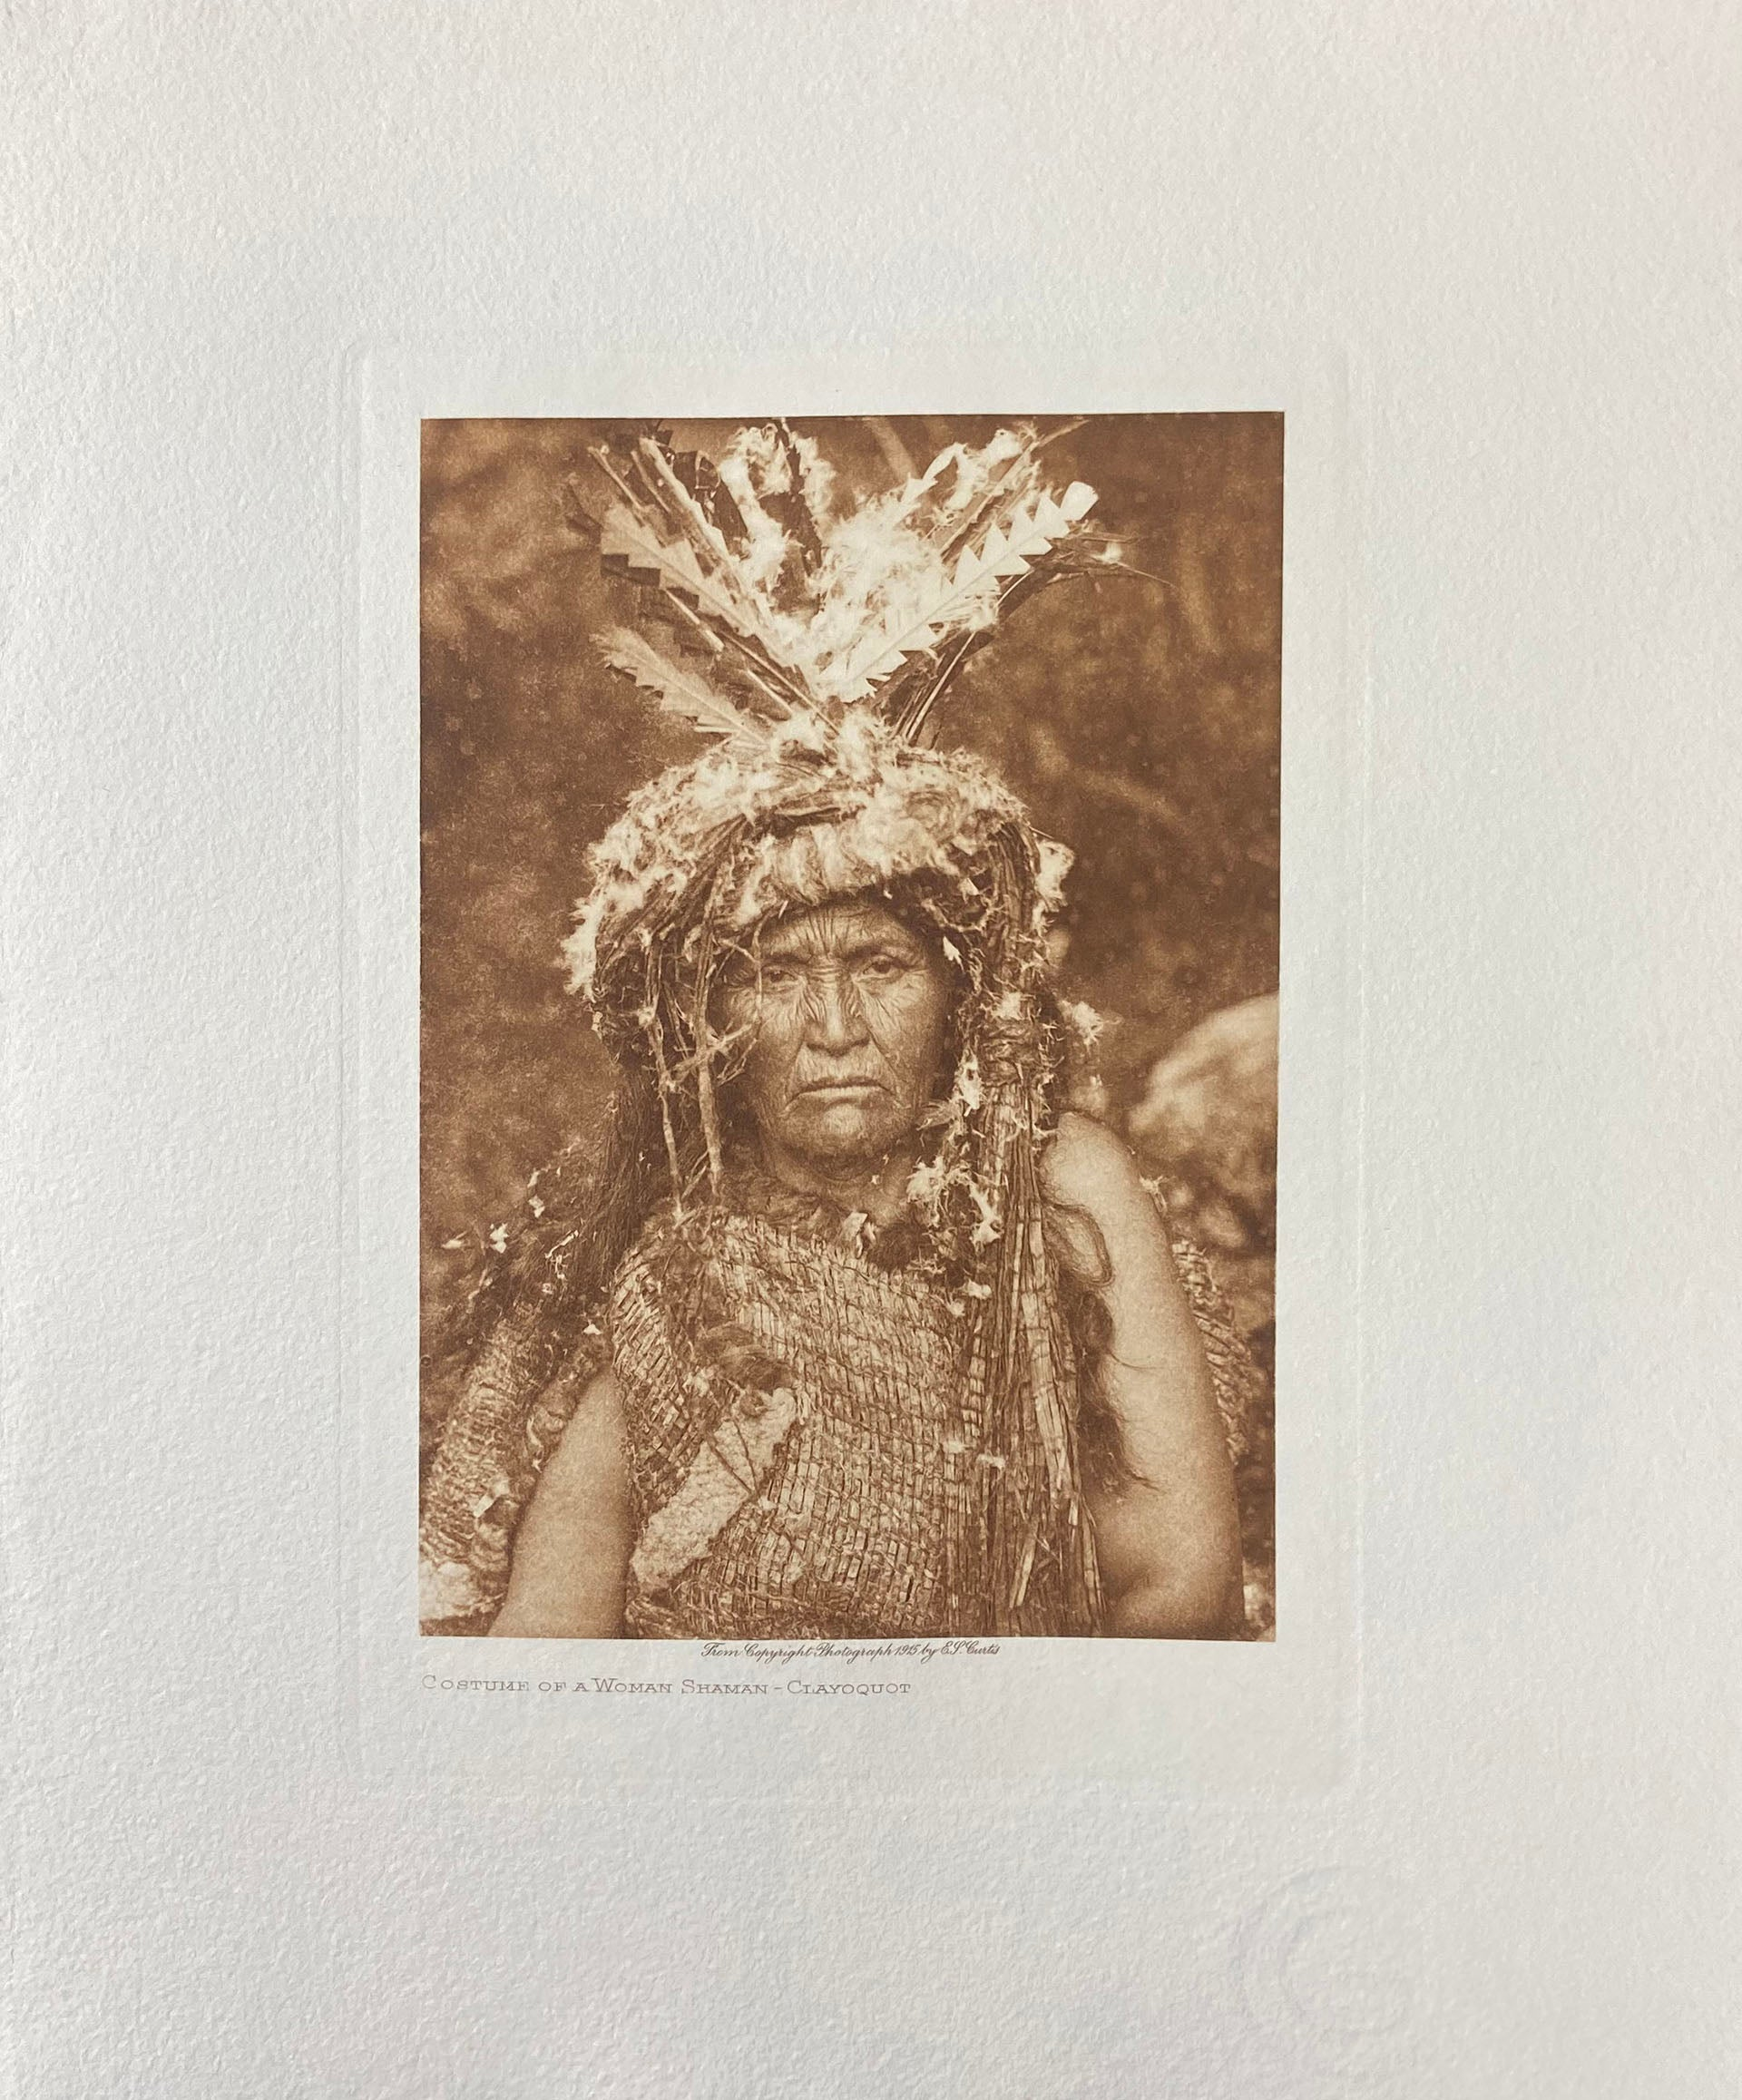 Costume of a Woman Shaman - Clayoquot